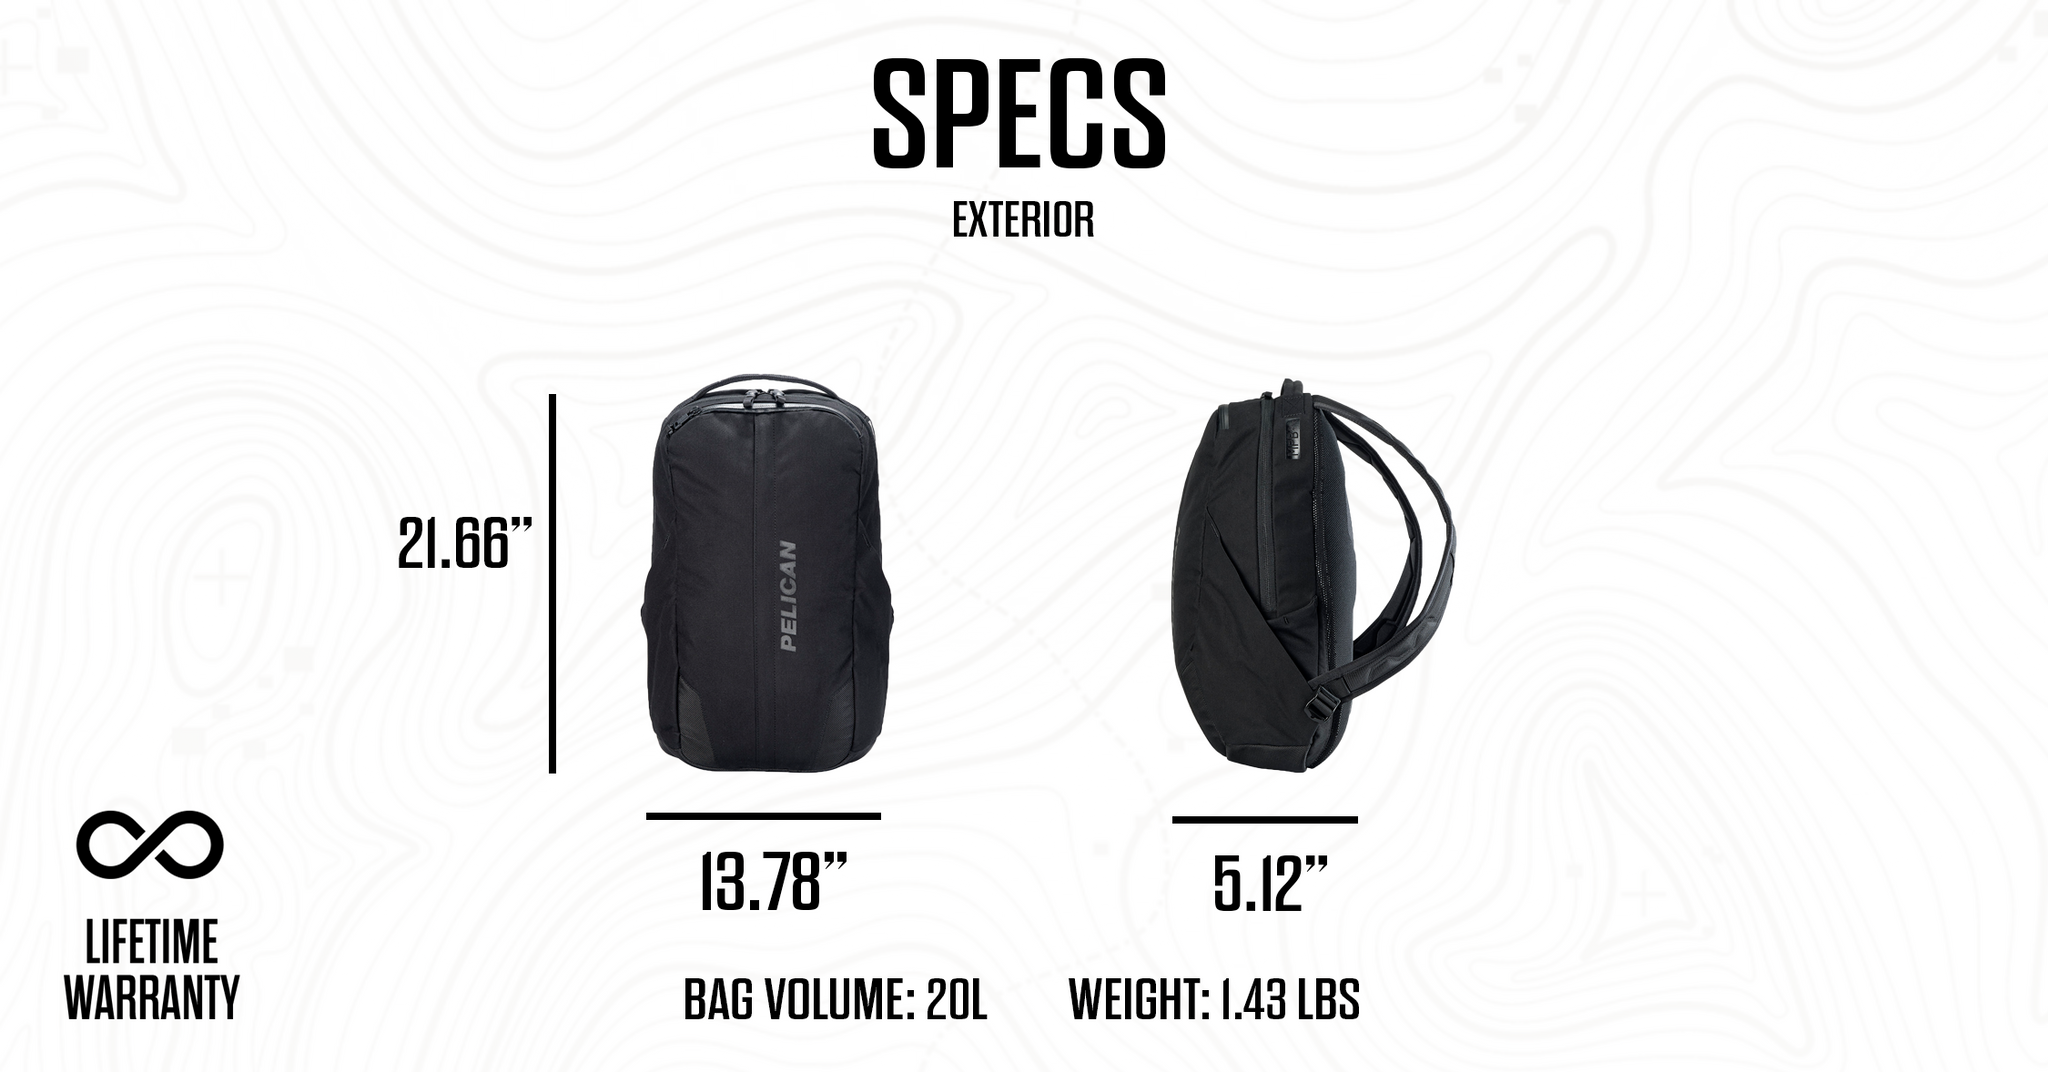 Pelican MPB20 Backpack Specs